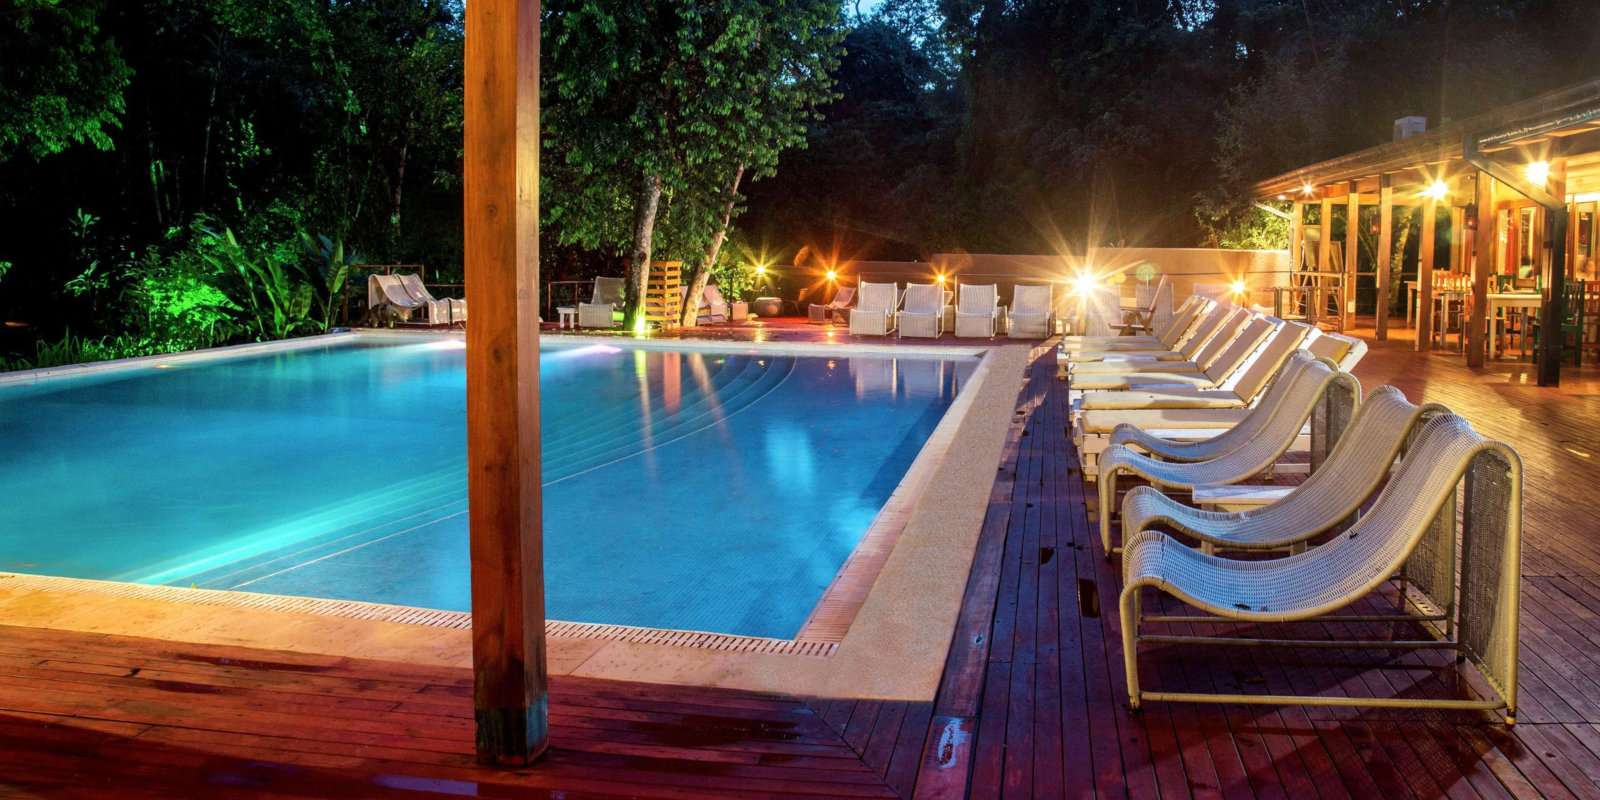 Iguazu gay travel guide - the Iguazu Jungle Lodge is a lovely mid-range choice to stay near the falls.